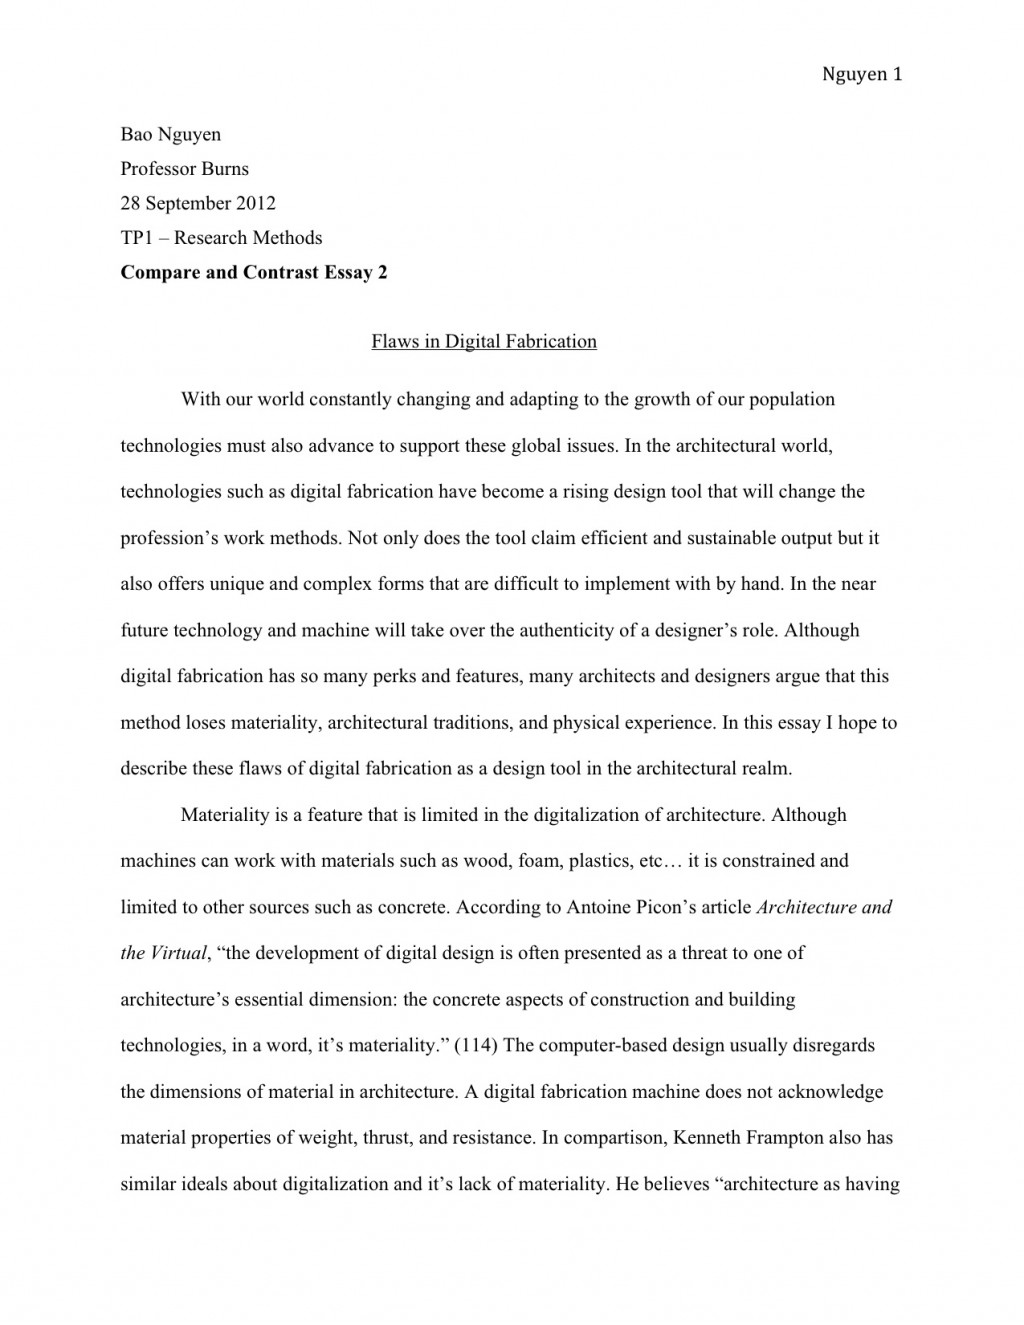 005 How To Write An Essay Example Tp1 3 Shocking About Yourself Without Using I For College English Introduction Large